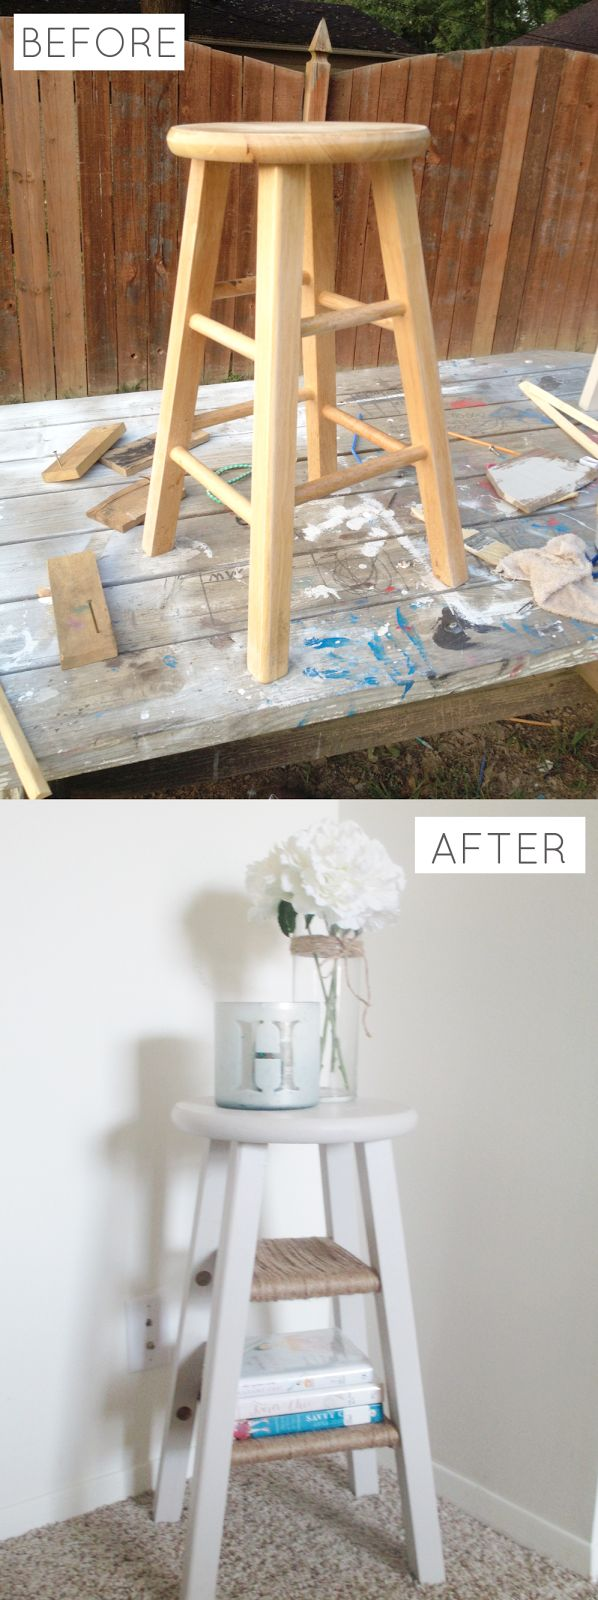 Ideas For Nightstands best 20+ refinished nightstand ideas on pinterest | refurbished